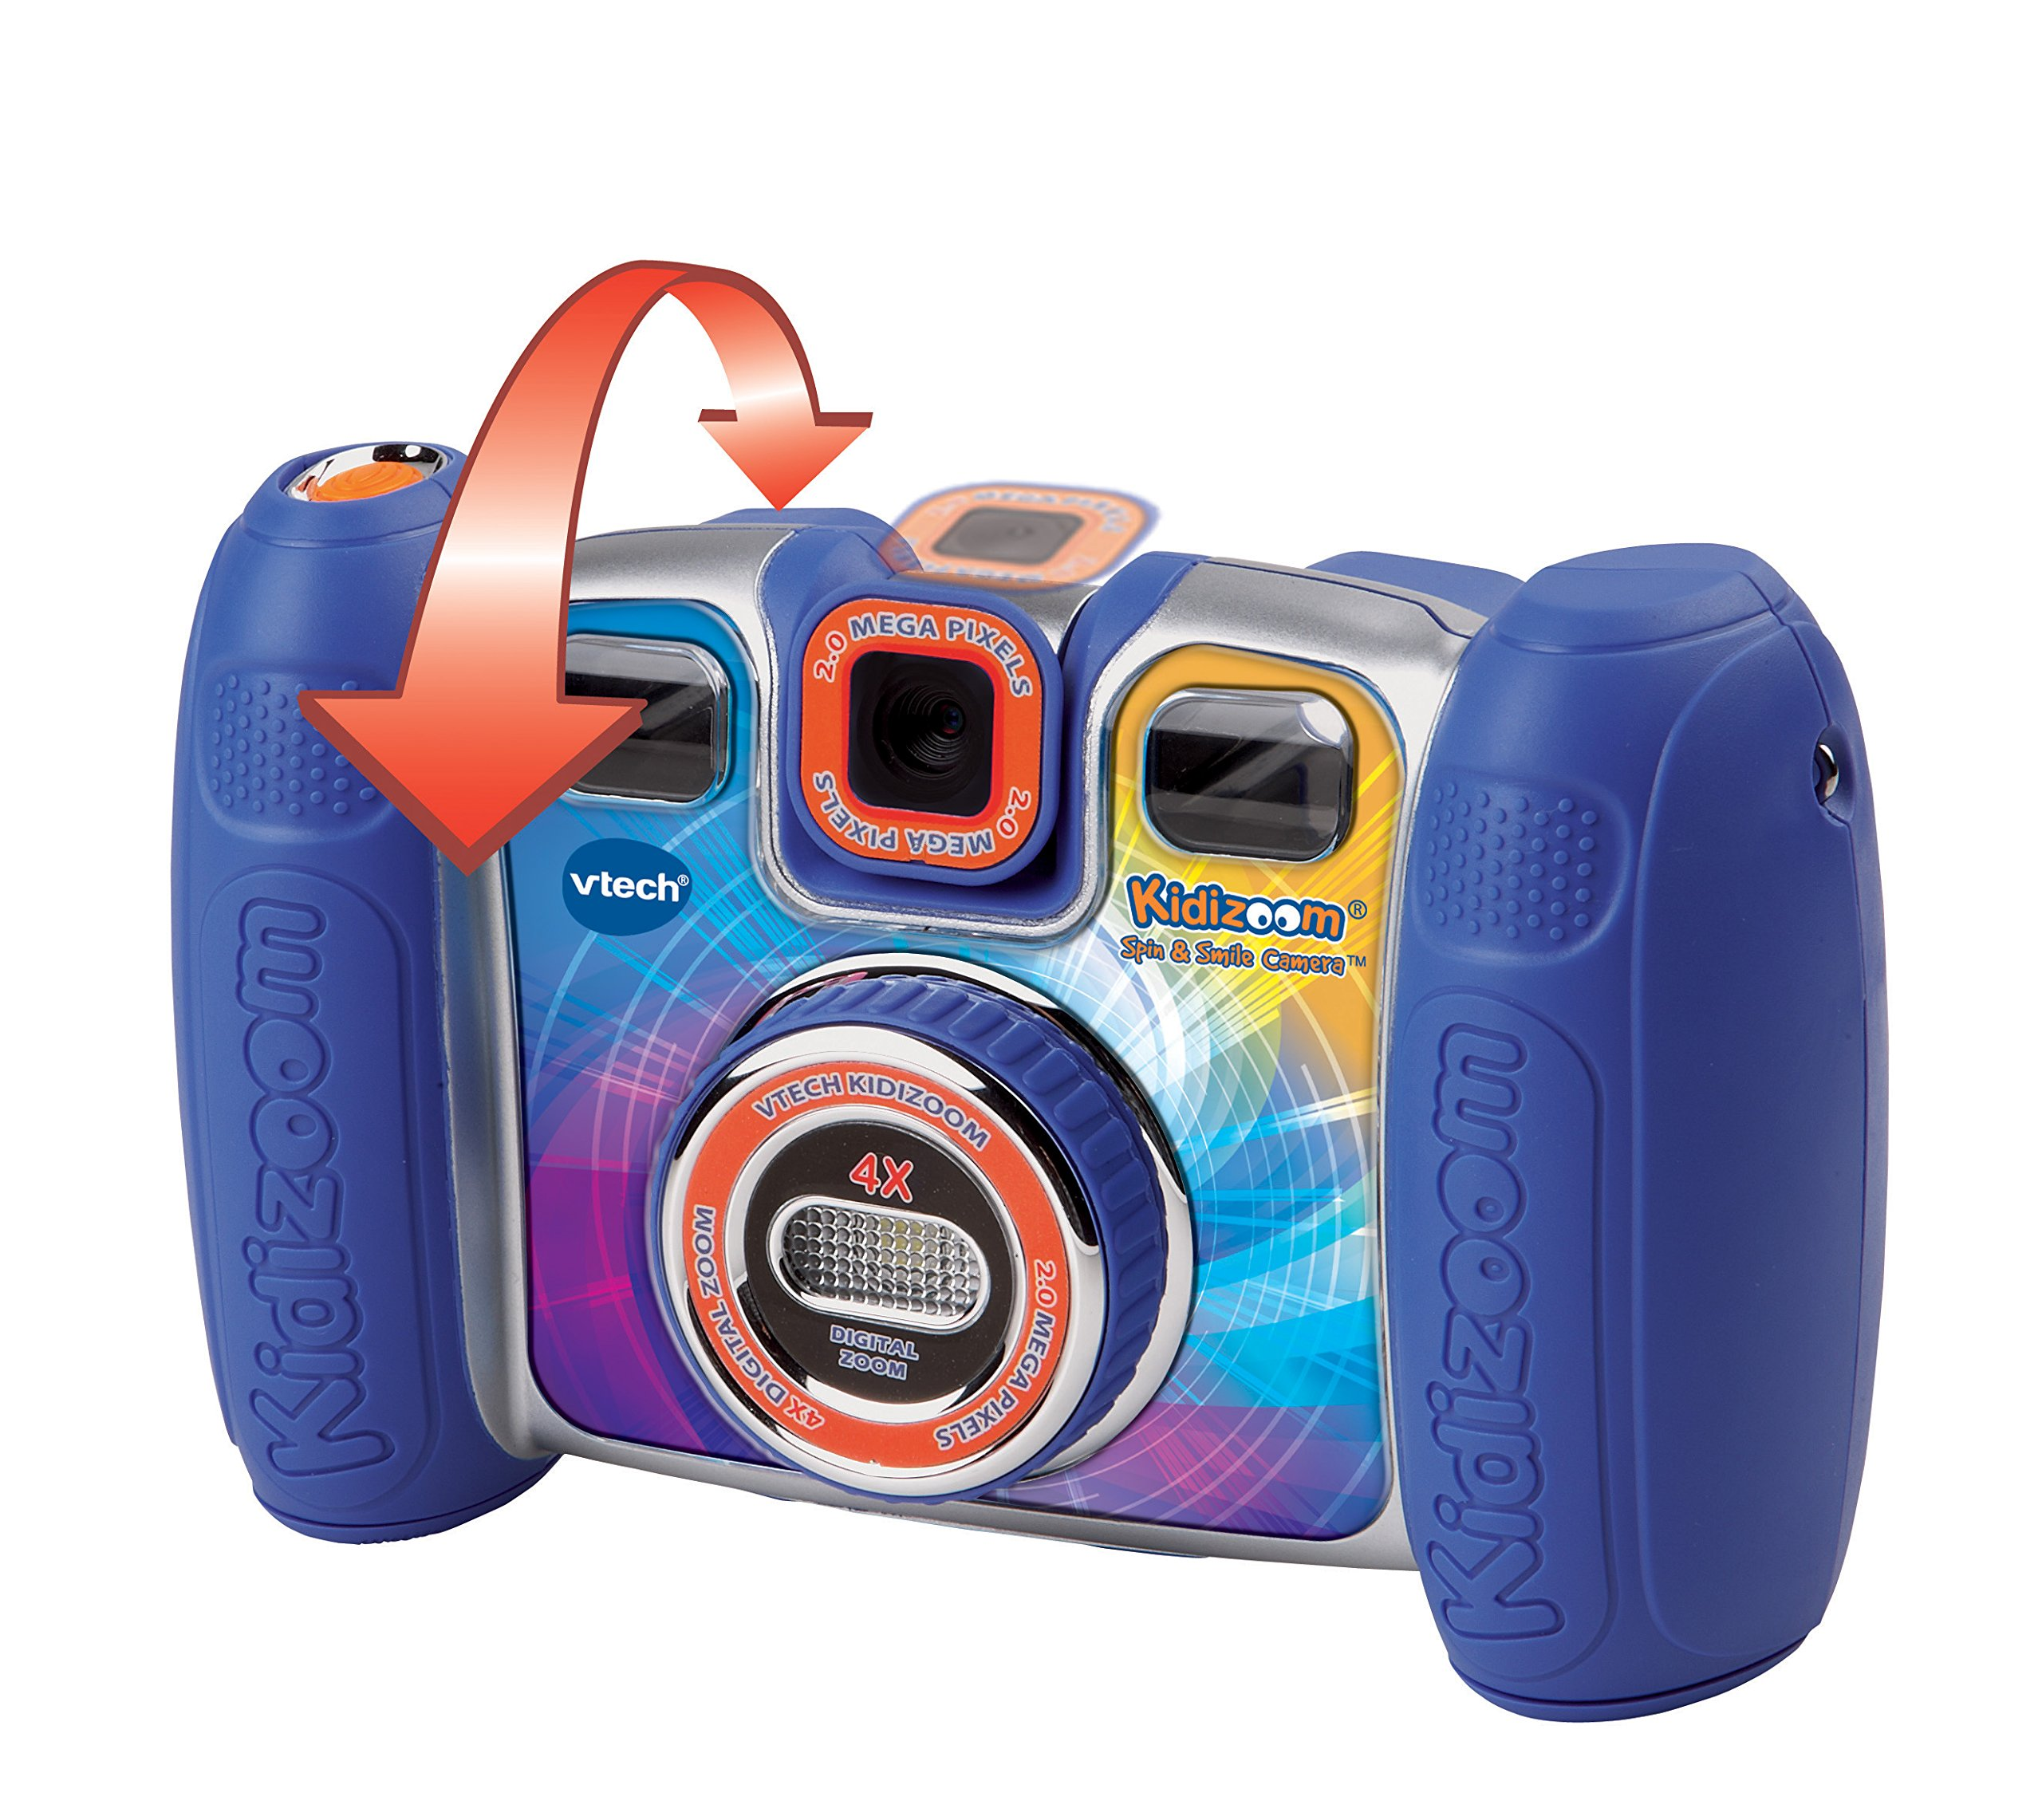 VTech Kidizoom Spin and Smile Camera, Blue by VTech (Image #3)